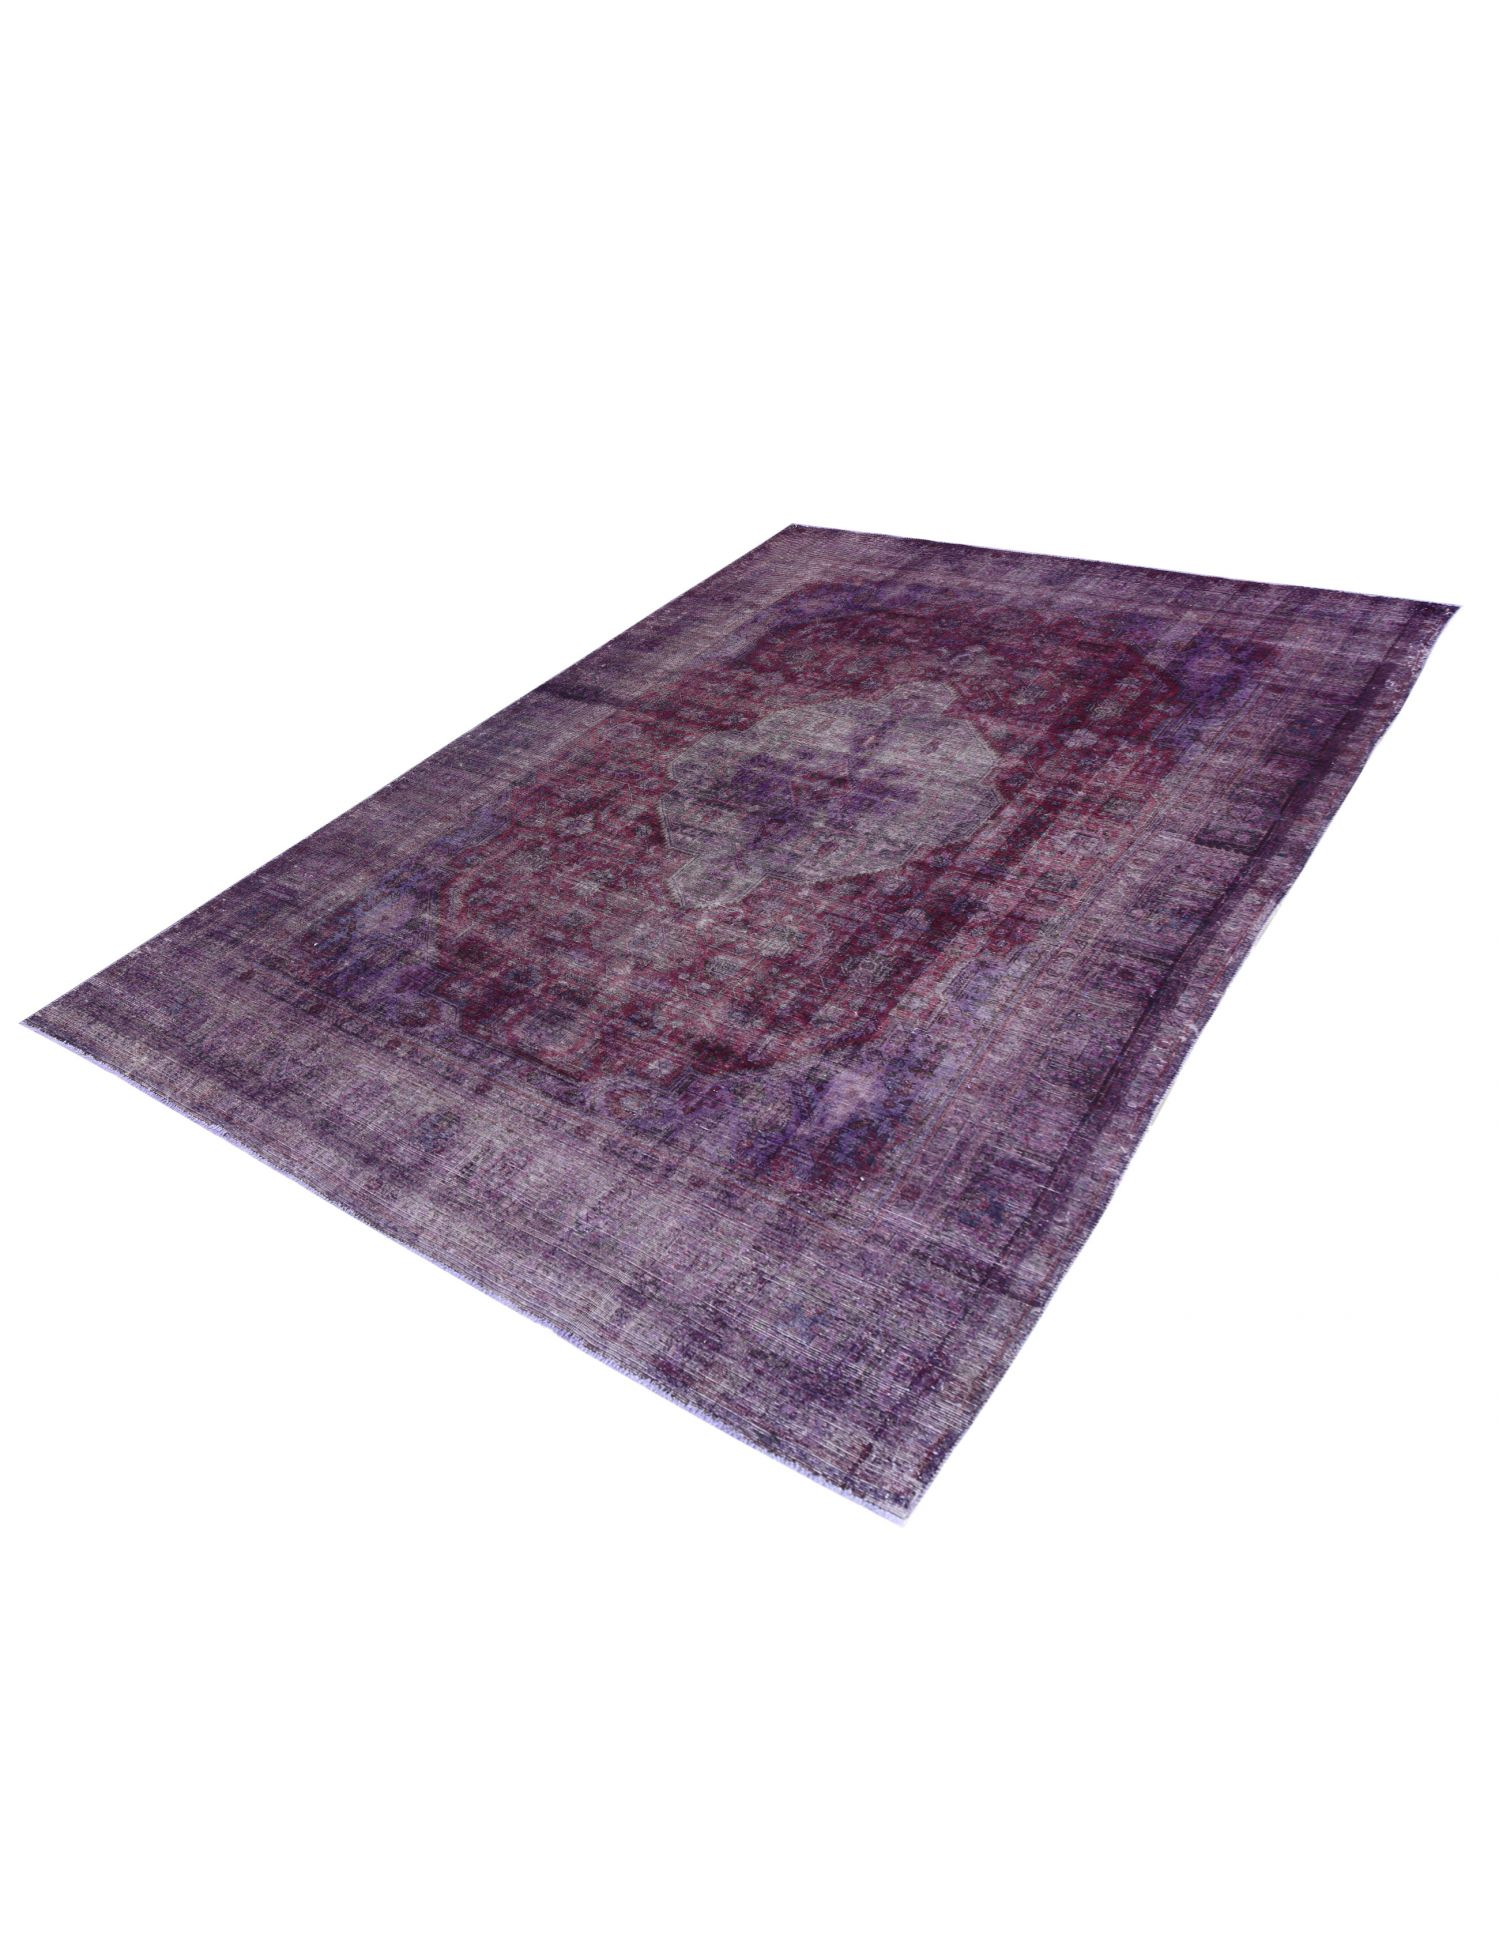 Vintage Carpets  purple <br/>382 x 294 cm